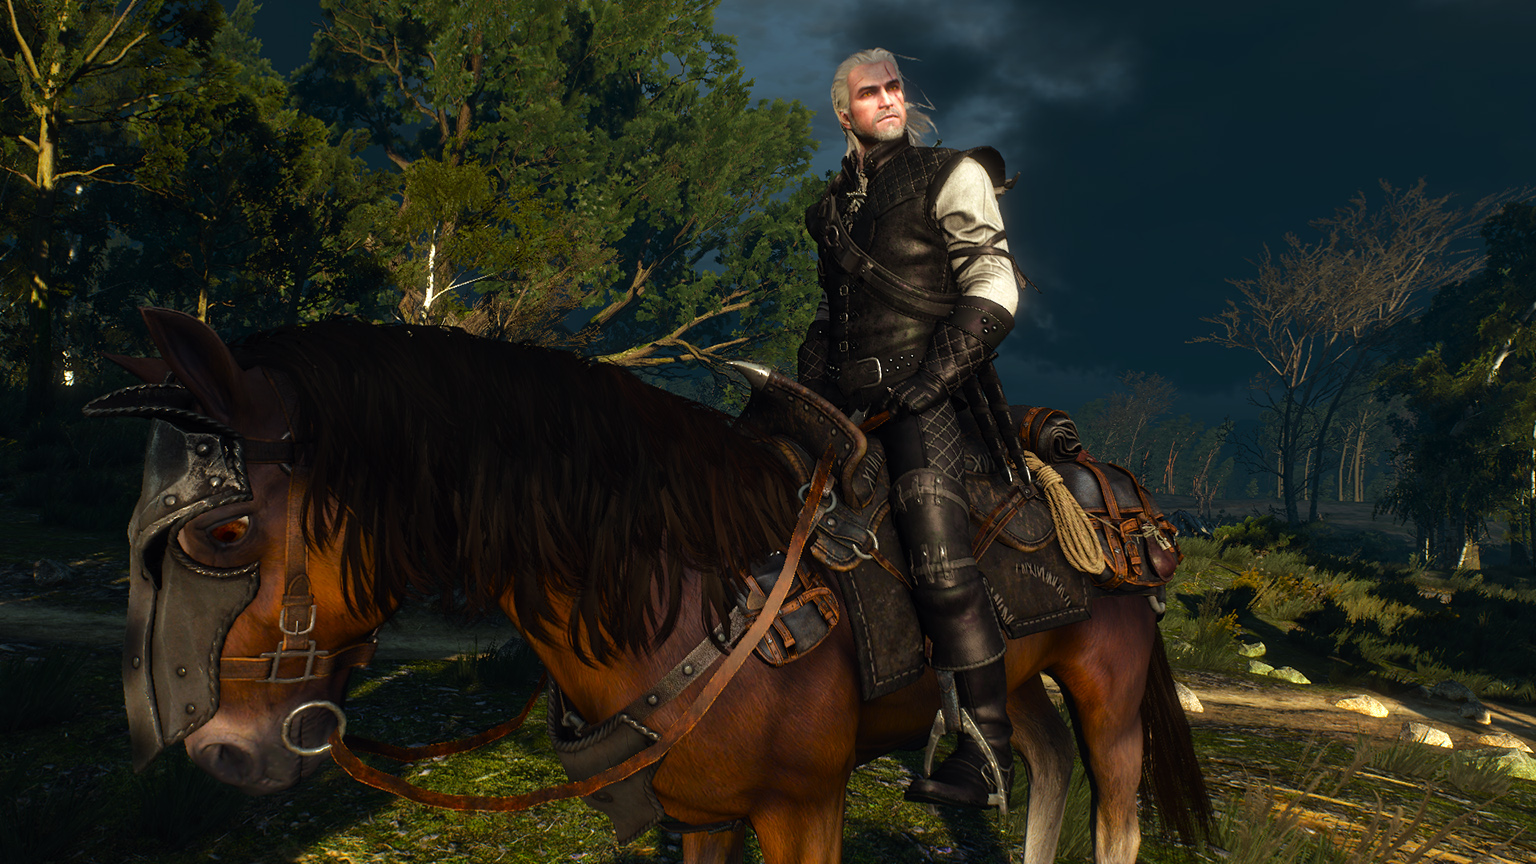 The Best Mods For The Witcher 3: Wild Hunt